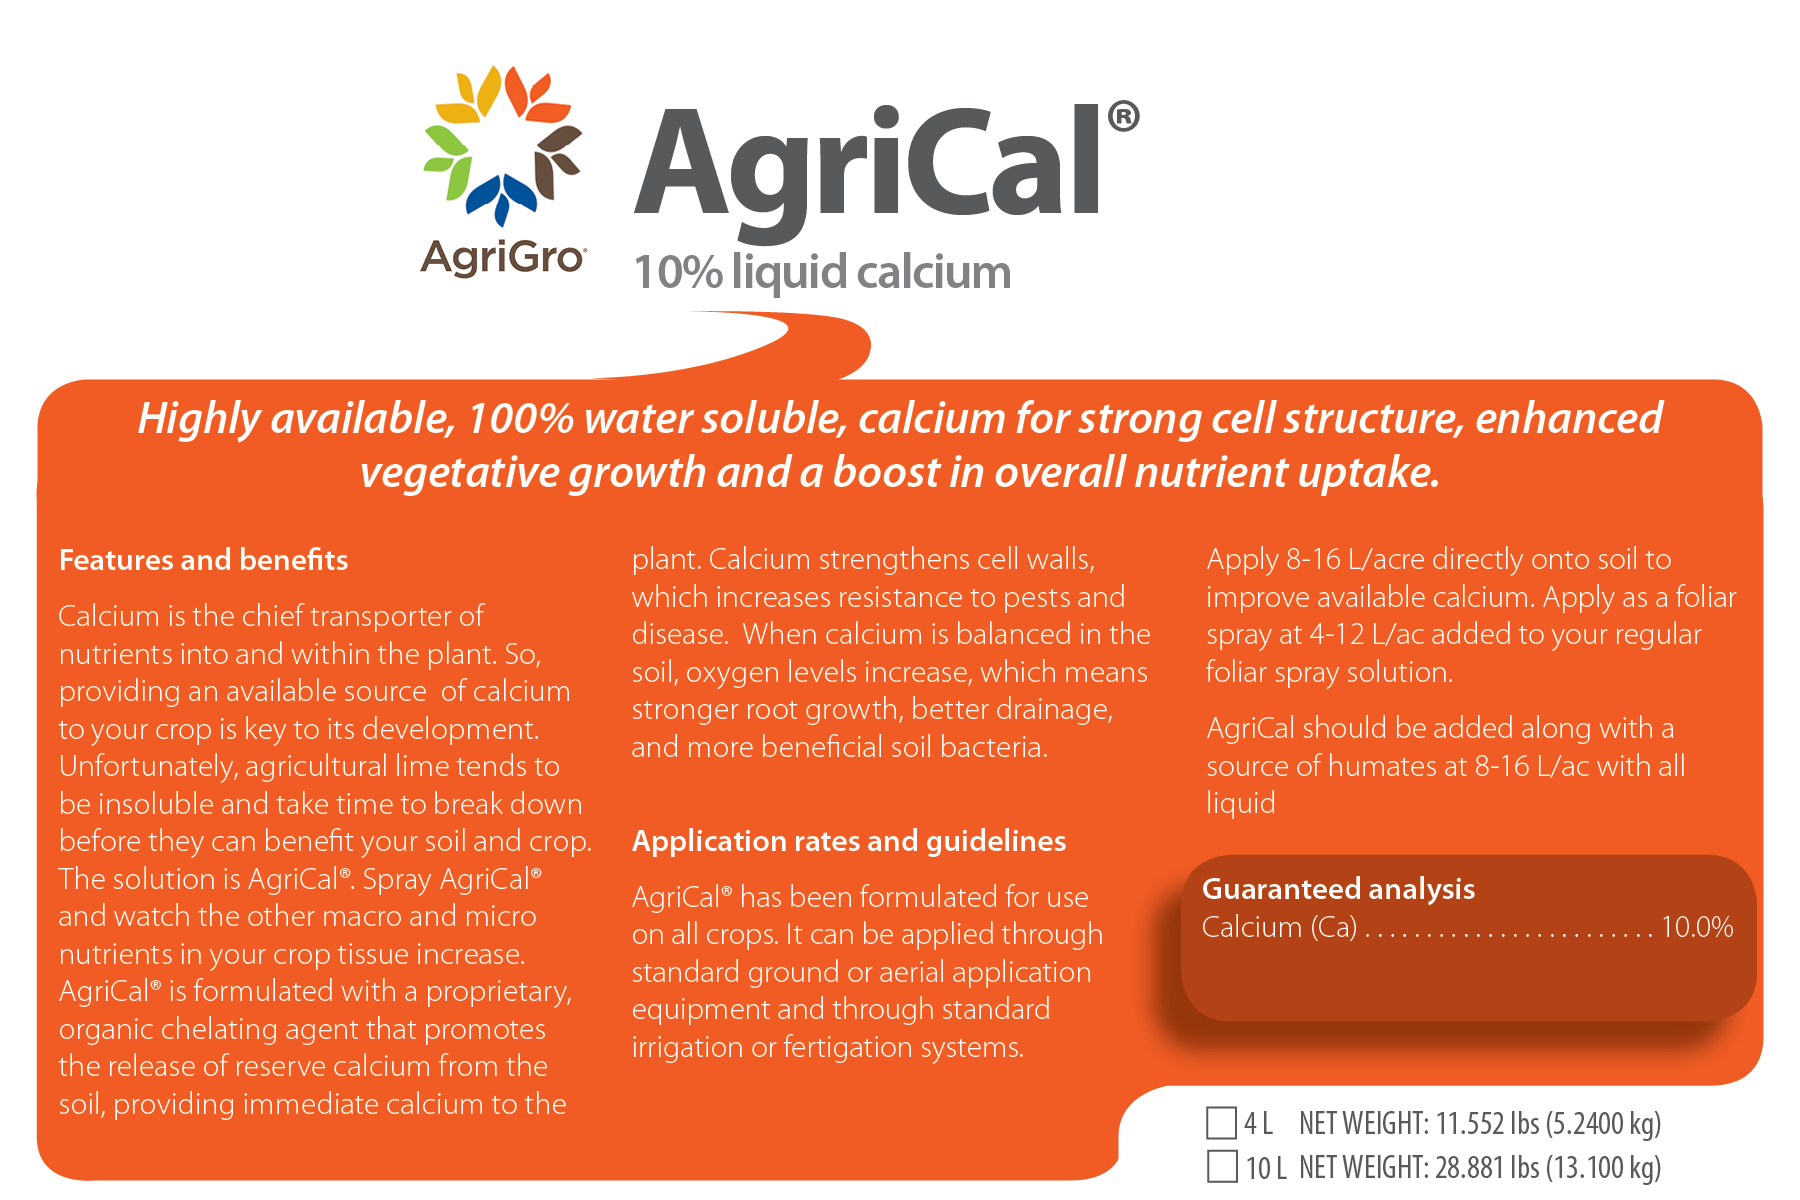 Agrical 10 Liquid Calcium Cell Structure Vegetal And Much More Interesting Information My Cart